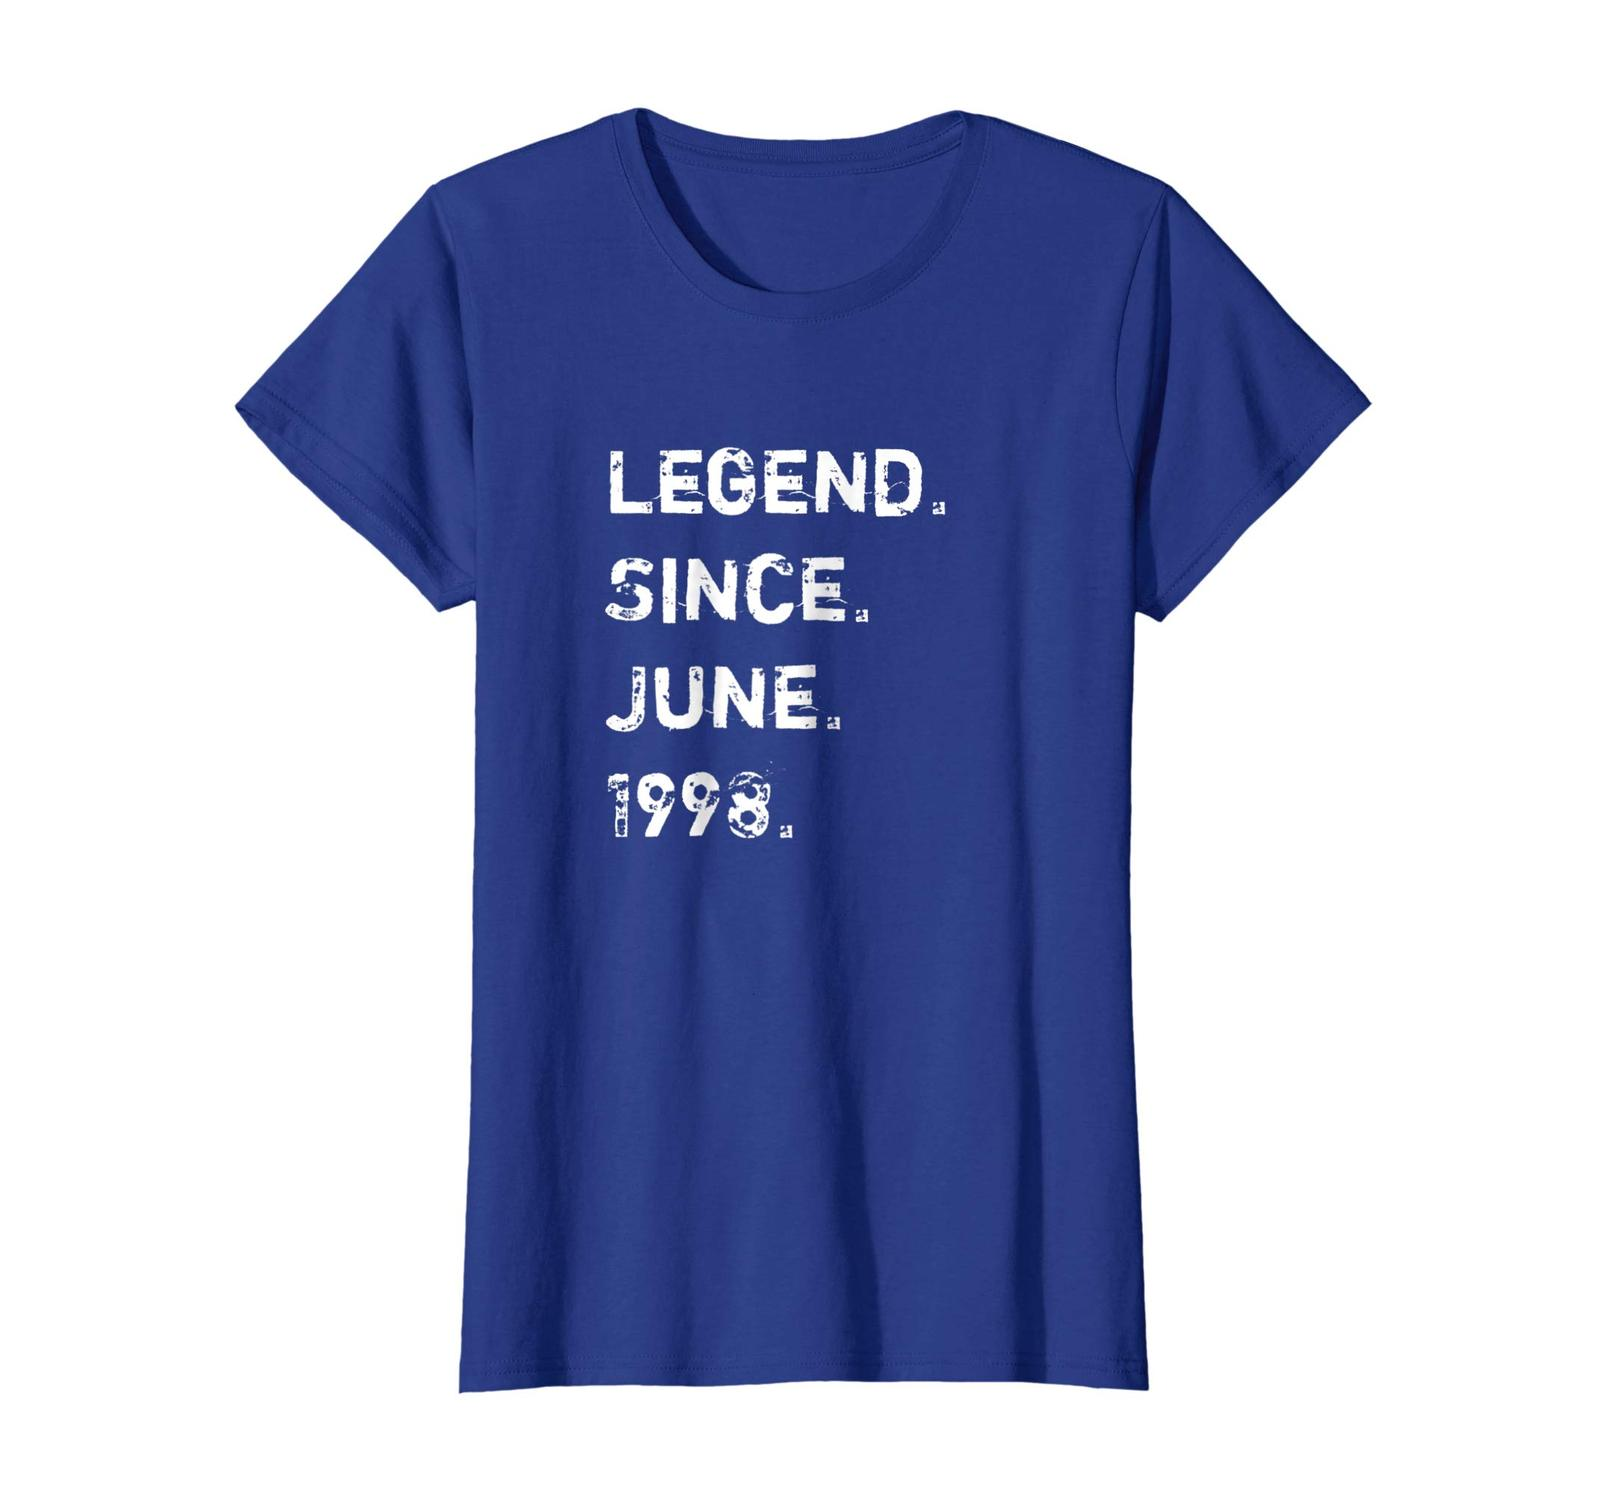 Brother Shirts - Legend Since June 1998 20 Years Old Birthday Gift Shirt Wowen image 4